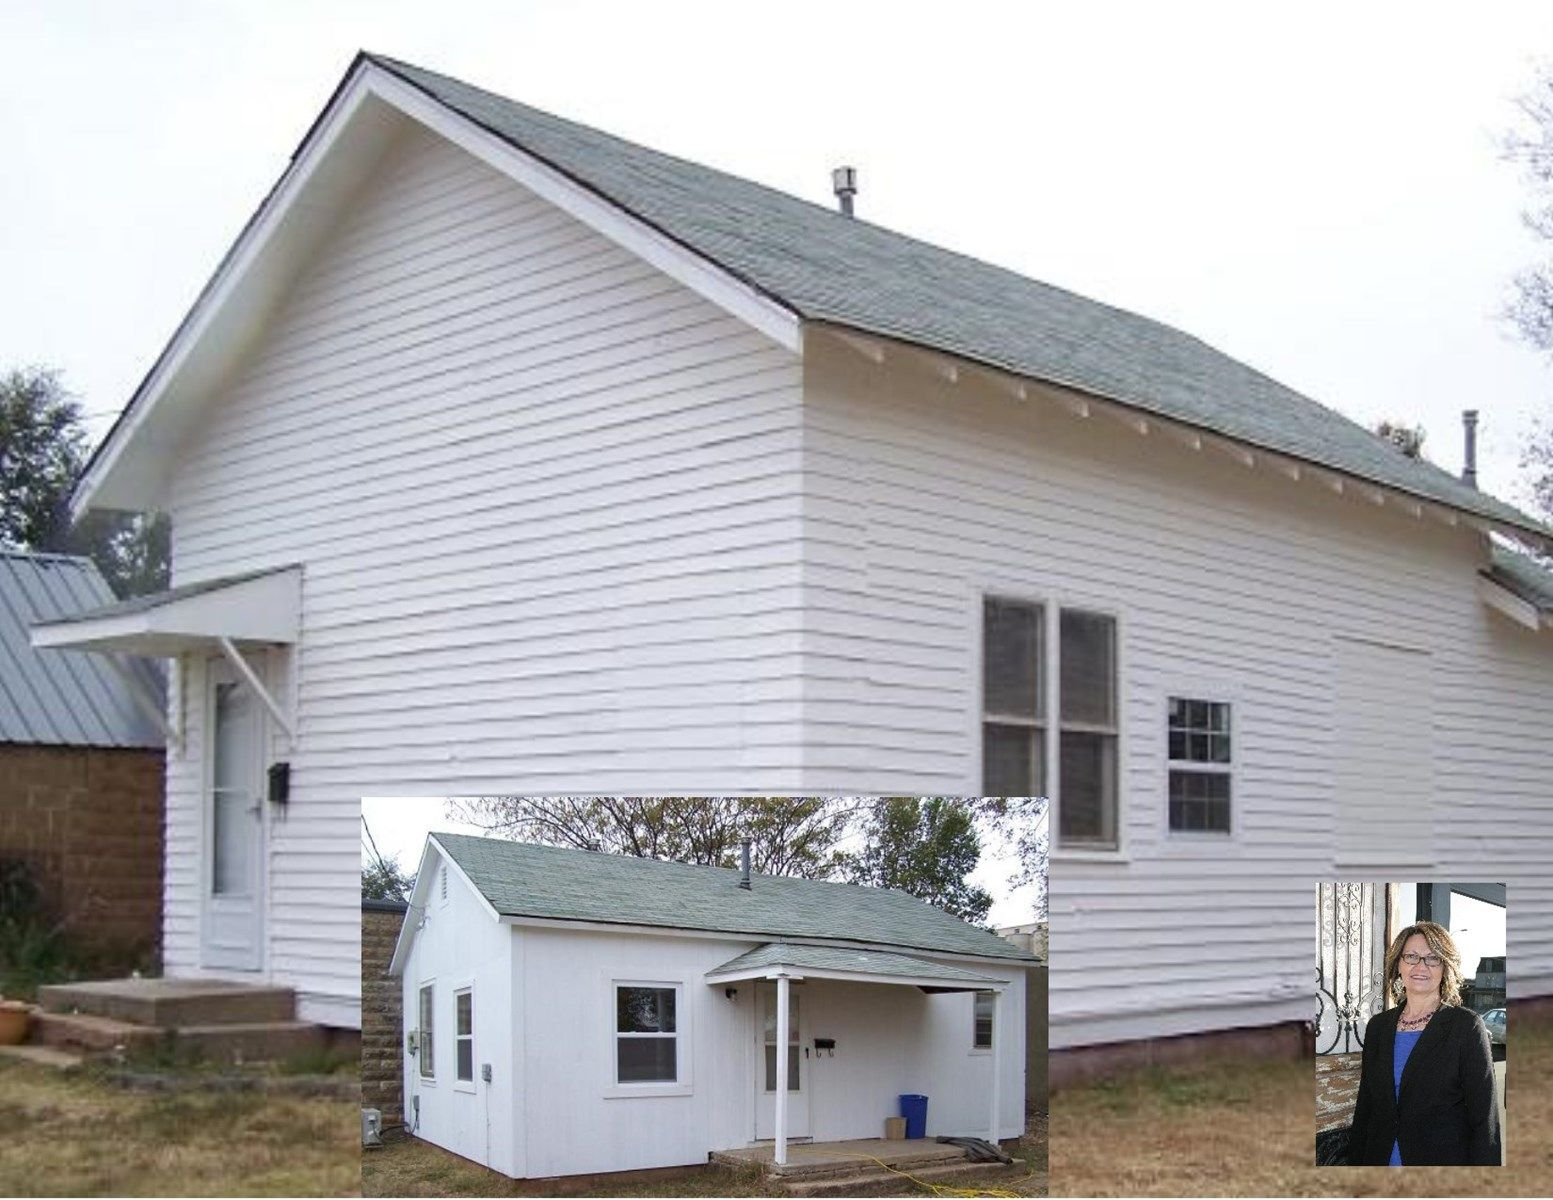 Two Homes, One Price! 207 & 207 1/2 College Ave, Alva, OK